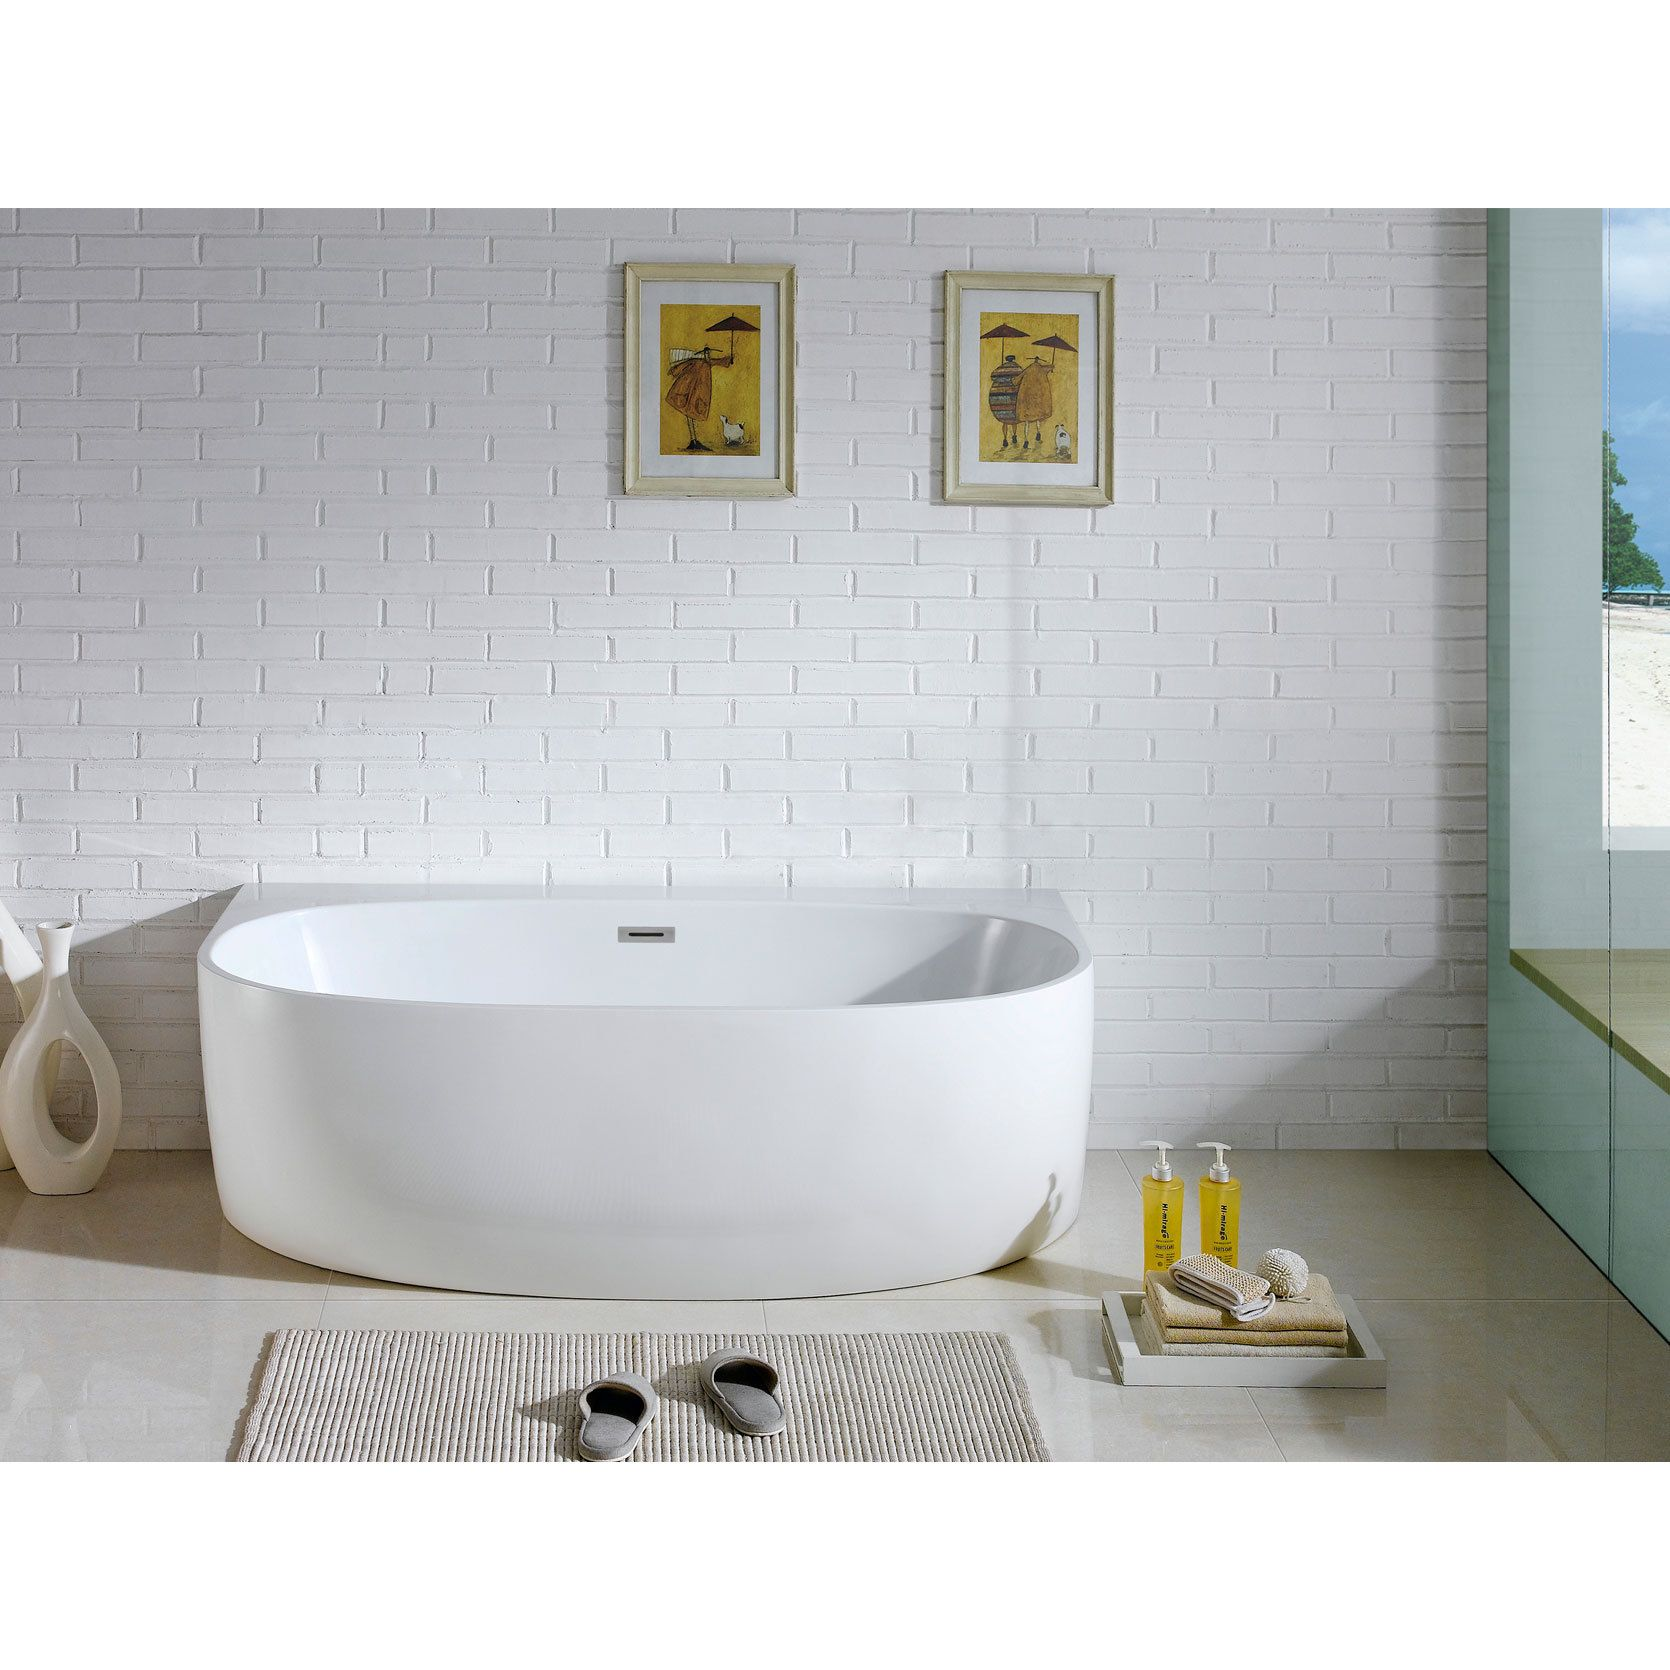 Pacific Collection Monte 58 Inch X 33 White Oval Soaking Bathtub Size Under 60 Inches